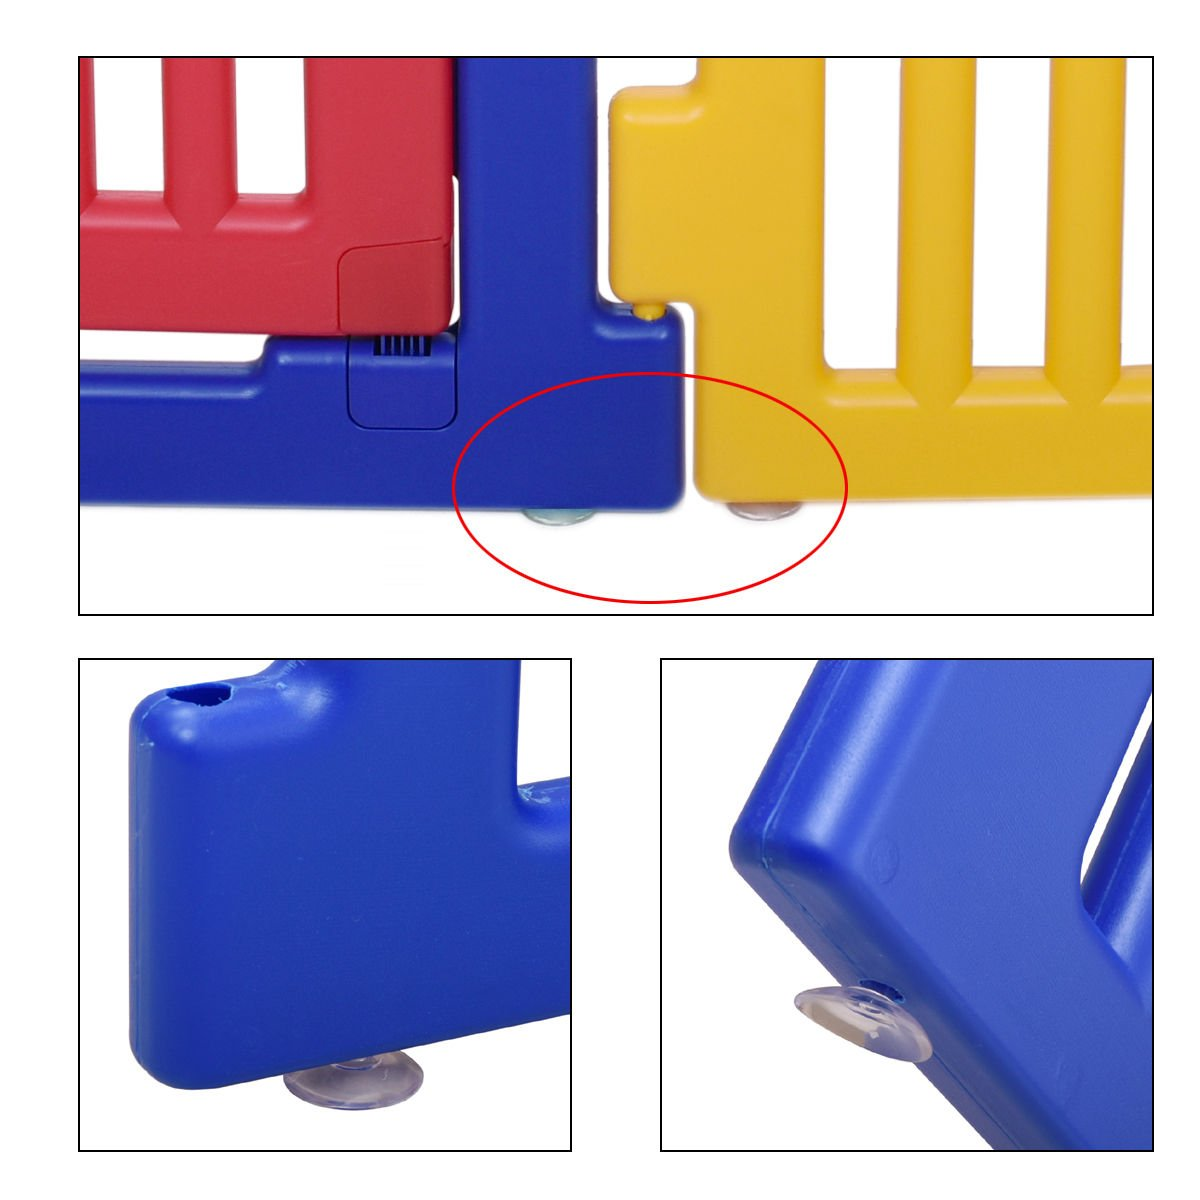 New 8 Panel Safety Play Center Baby Playpen Kids Yard Home Indoor Outdoor Pen by Eade shop (Image #8)